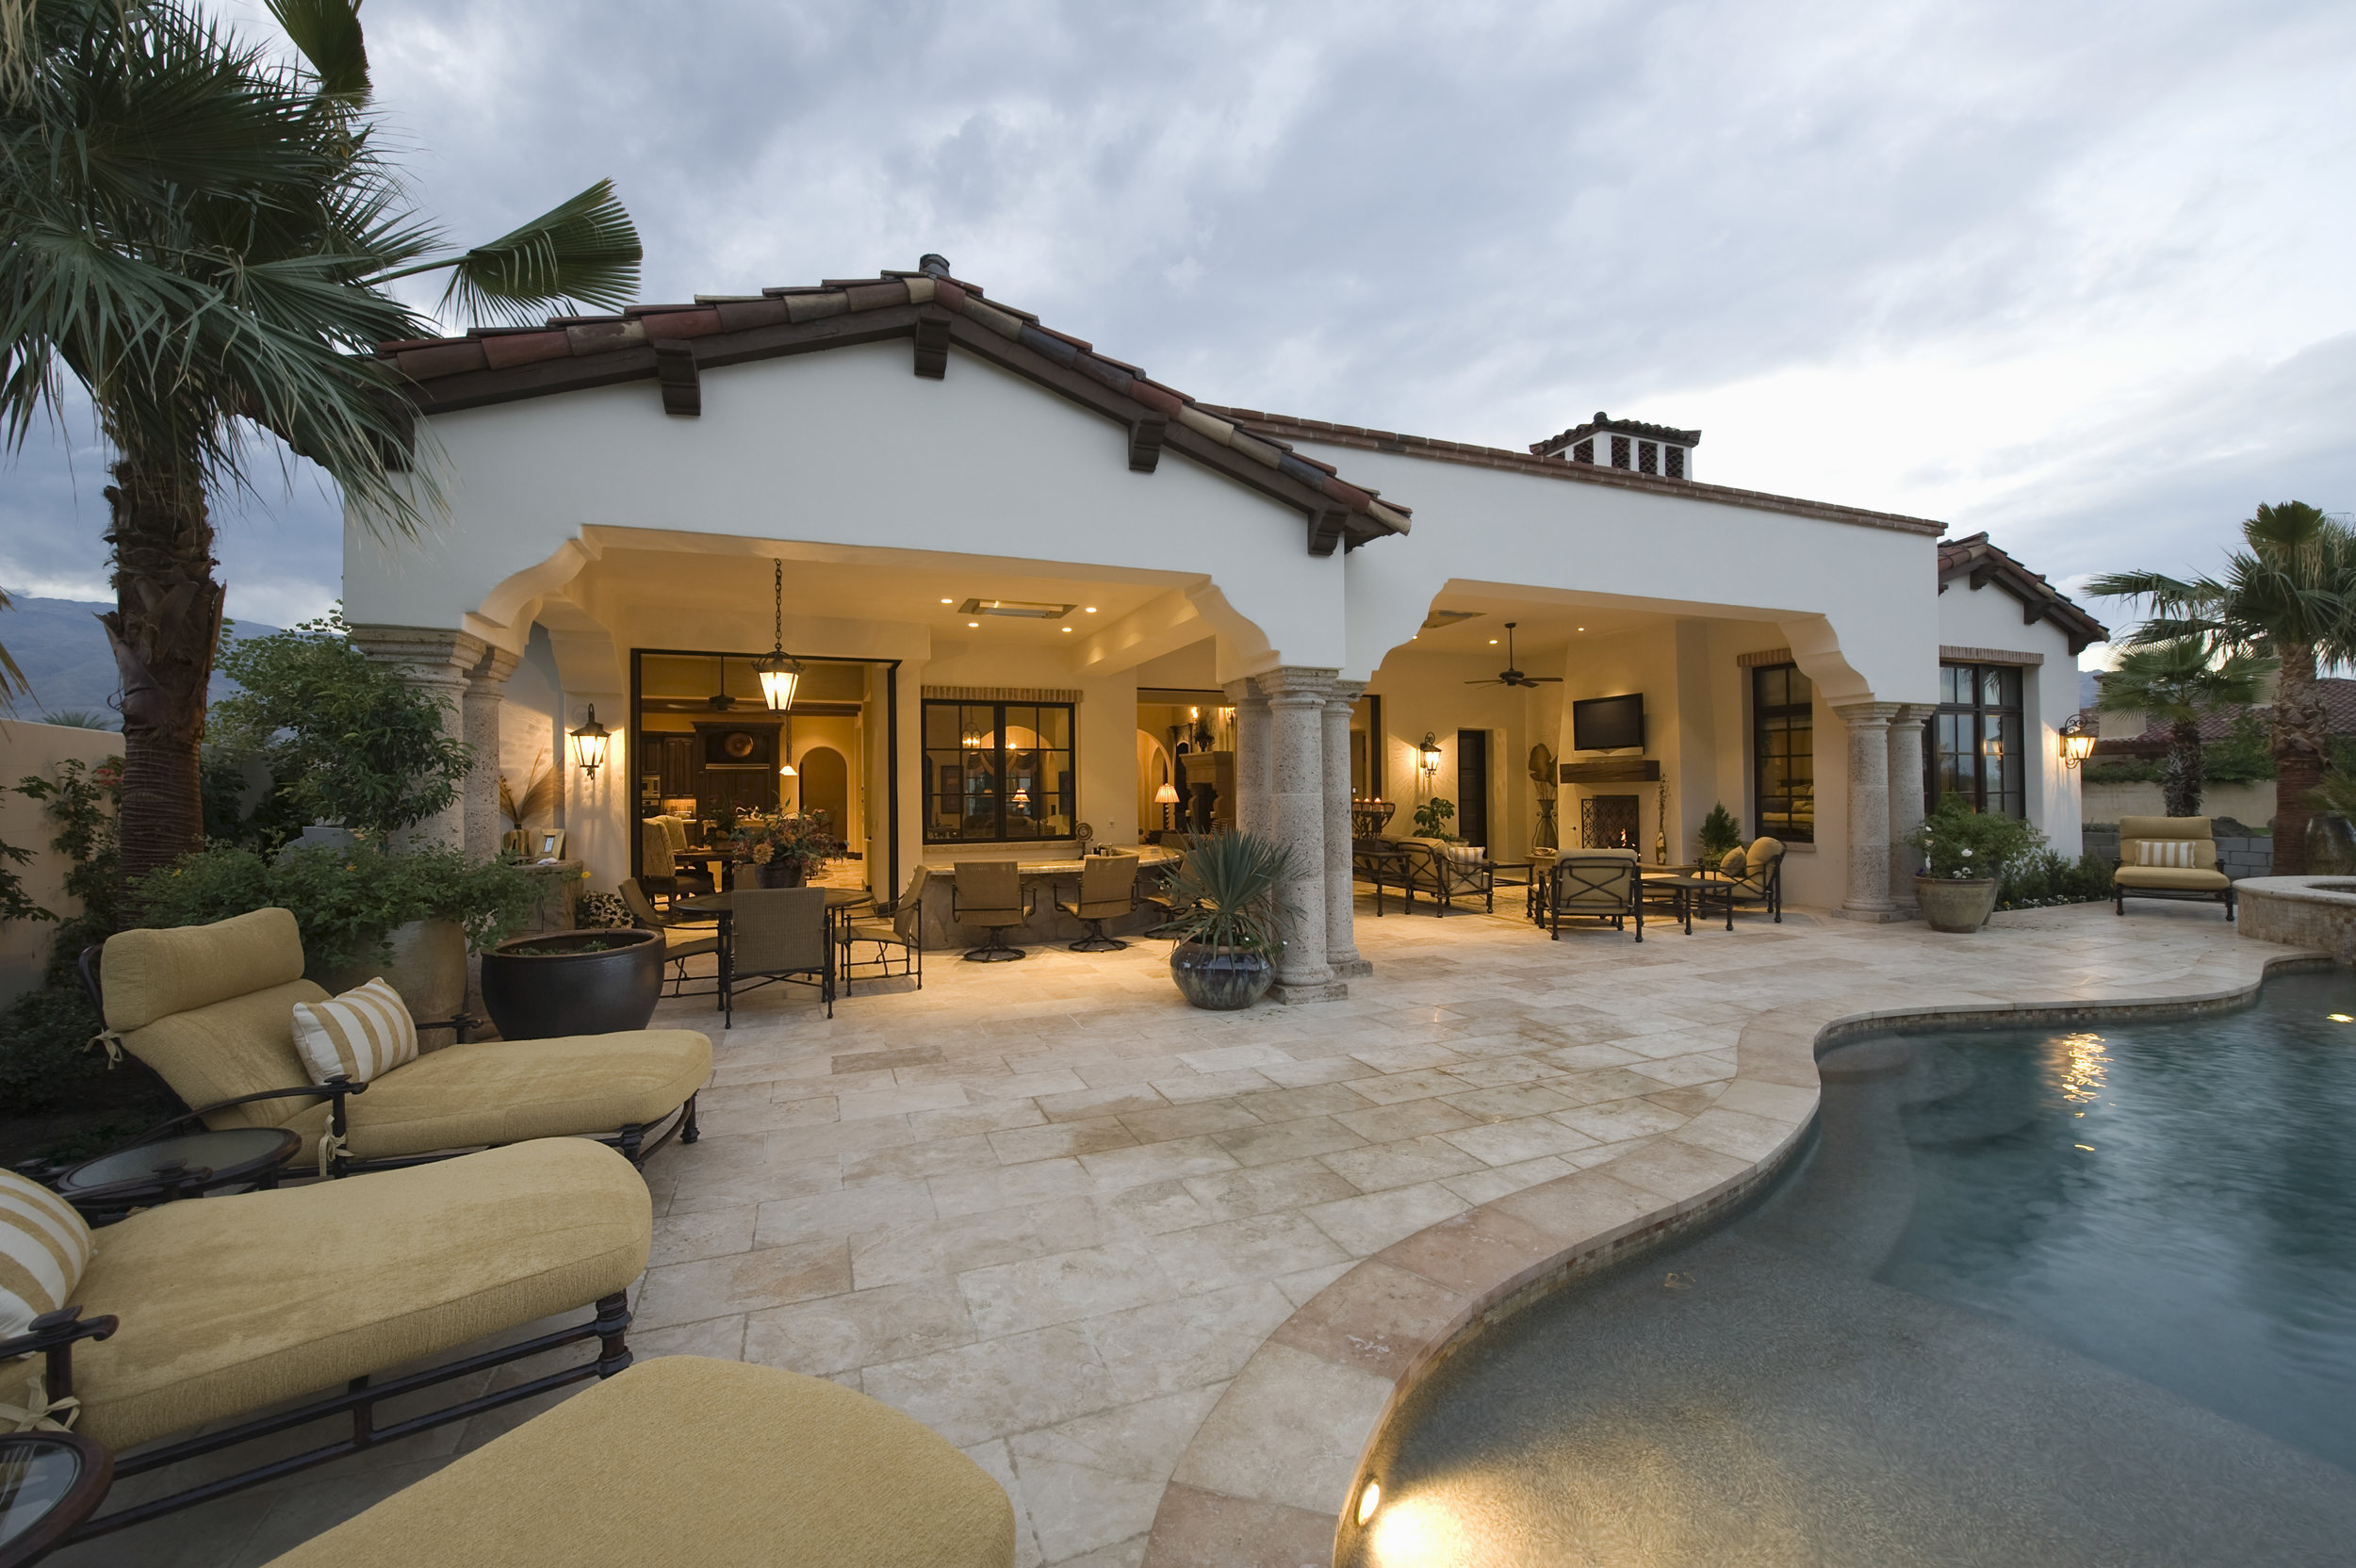 It's most likely time to think about a flattening real estate market in Palm Springs